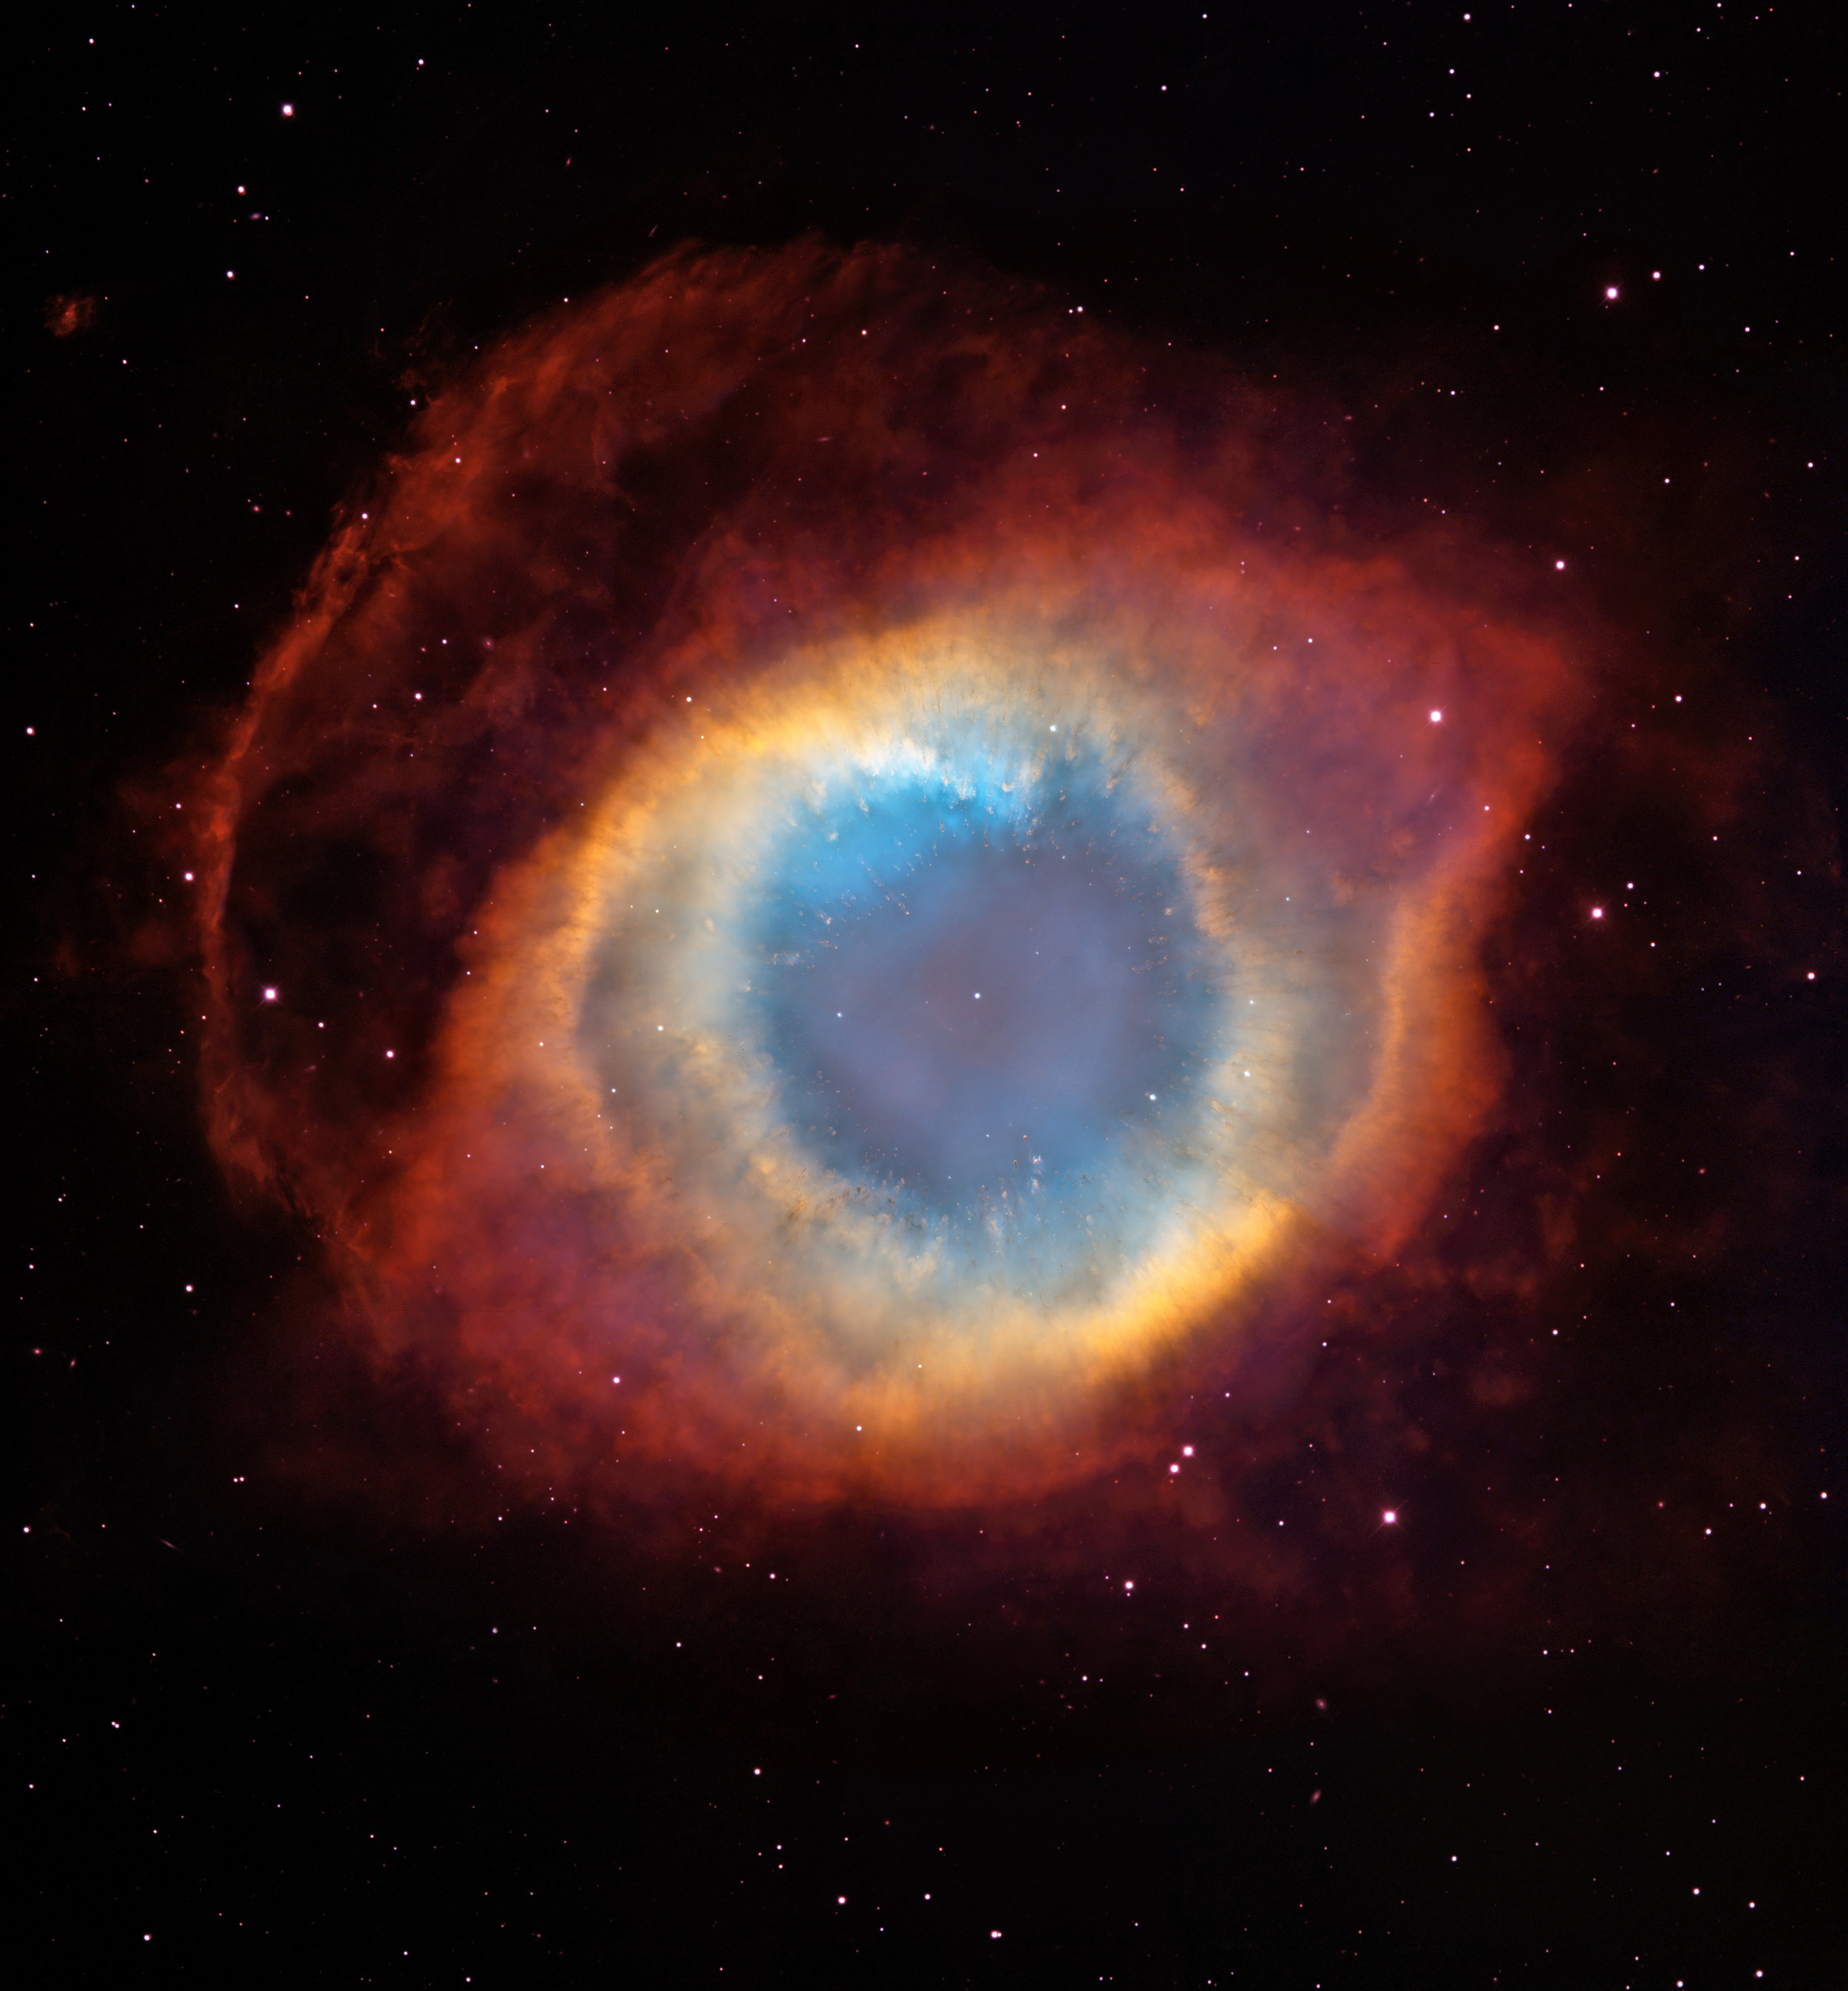 This composite image is a view of the colorful Helix Nebula taken with the  Advanced Camera for Surveys  aboard  NASA / ESA  Hubble Space Telescope and the Mosaic II Camera on the 4-meter telescope at Cerro Tololo Inter-American Observatory in Chile. The object is so large that both telescopes were needed to capture a complete view. The Helix is a planetary nebula, the glowing gaseous envelope expelled by a dying, sun-like star. The Helix resembles a simple doughnut as seen from Earth. But looks can be deceiving. New evidence suggests that the Helix consists of two gaseous disks nearly perpendicular to each other.   Credit:   NASA ,  ESA , C.R. O'Dell (Vanderbilt University), and M. Meixner, P. McCullough, and G. Bacon (  Space Telescope Science Institute )